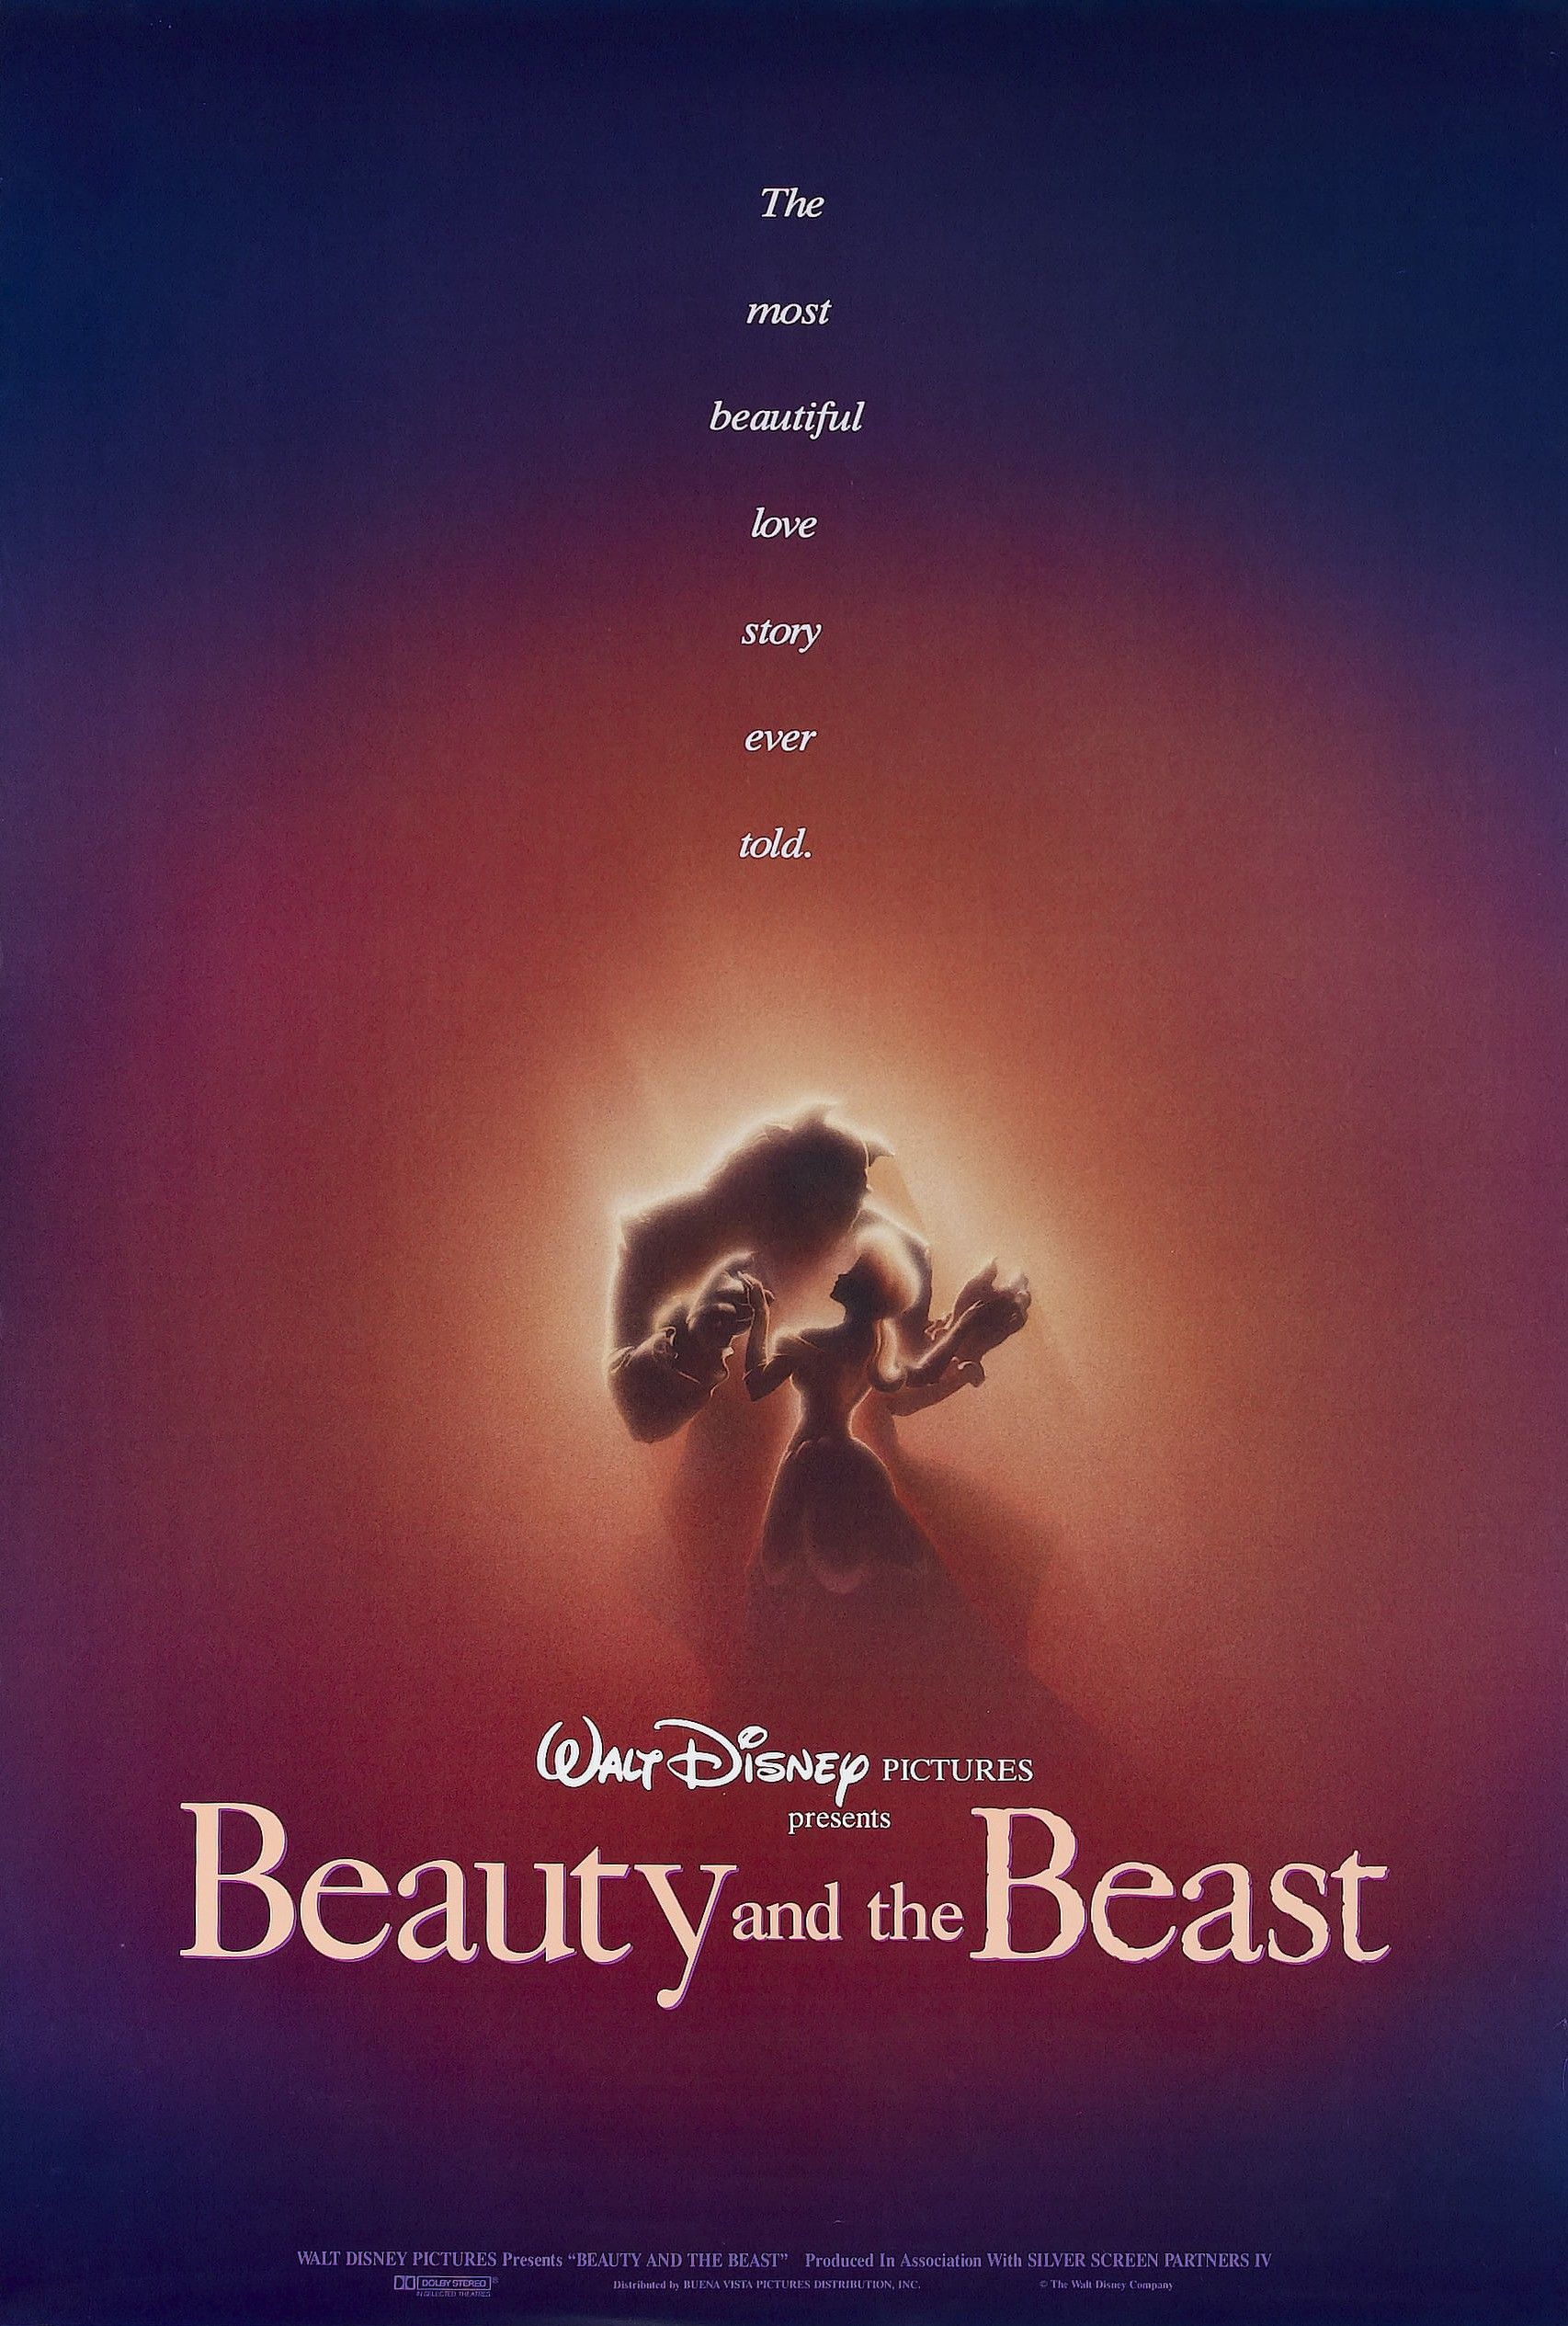 Beauty and the Beast (1991; animated)